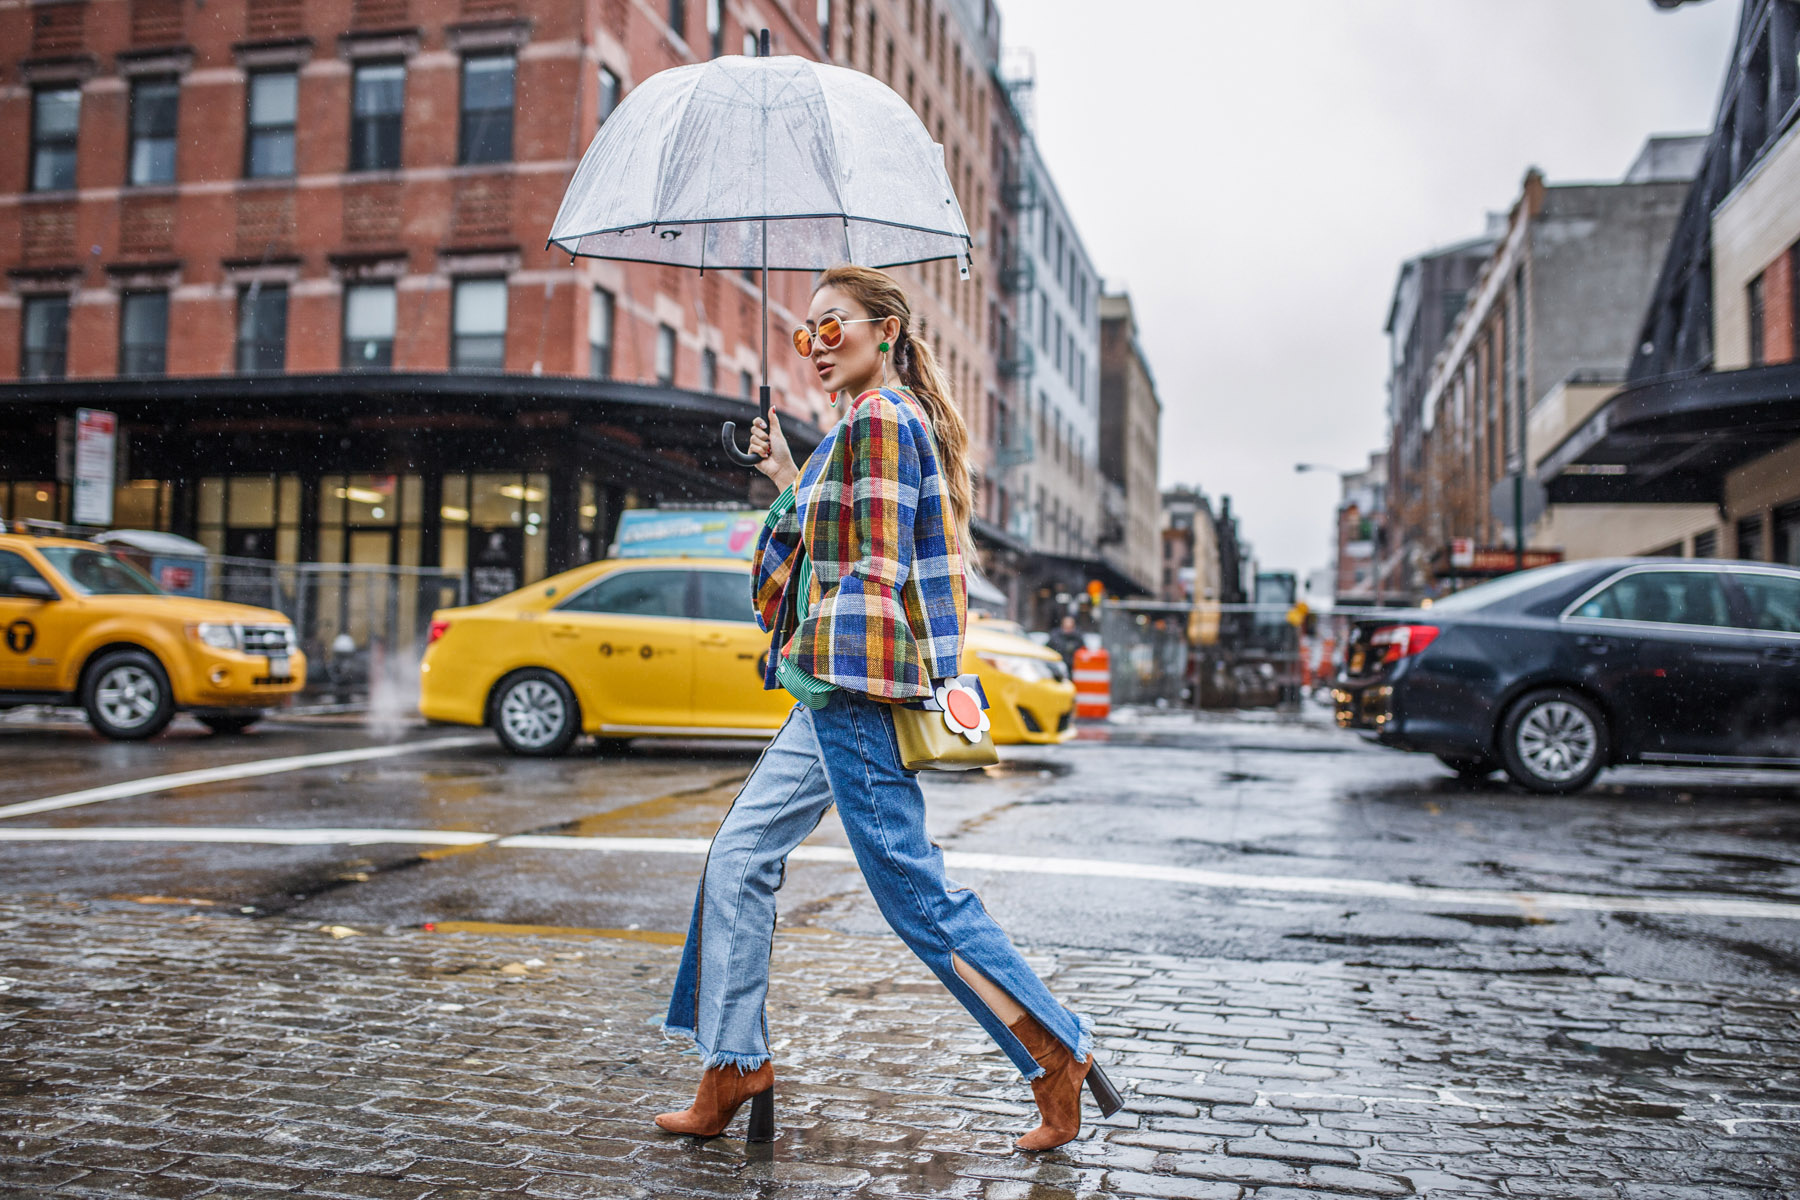 6 Crucial Tips for Surviving Fashion Week // NotJessFashion.com // 70s Look Suno Plaid Jacket Zara Suede Booties